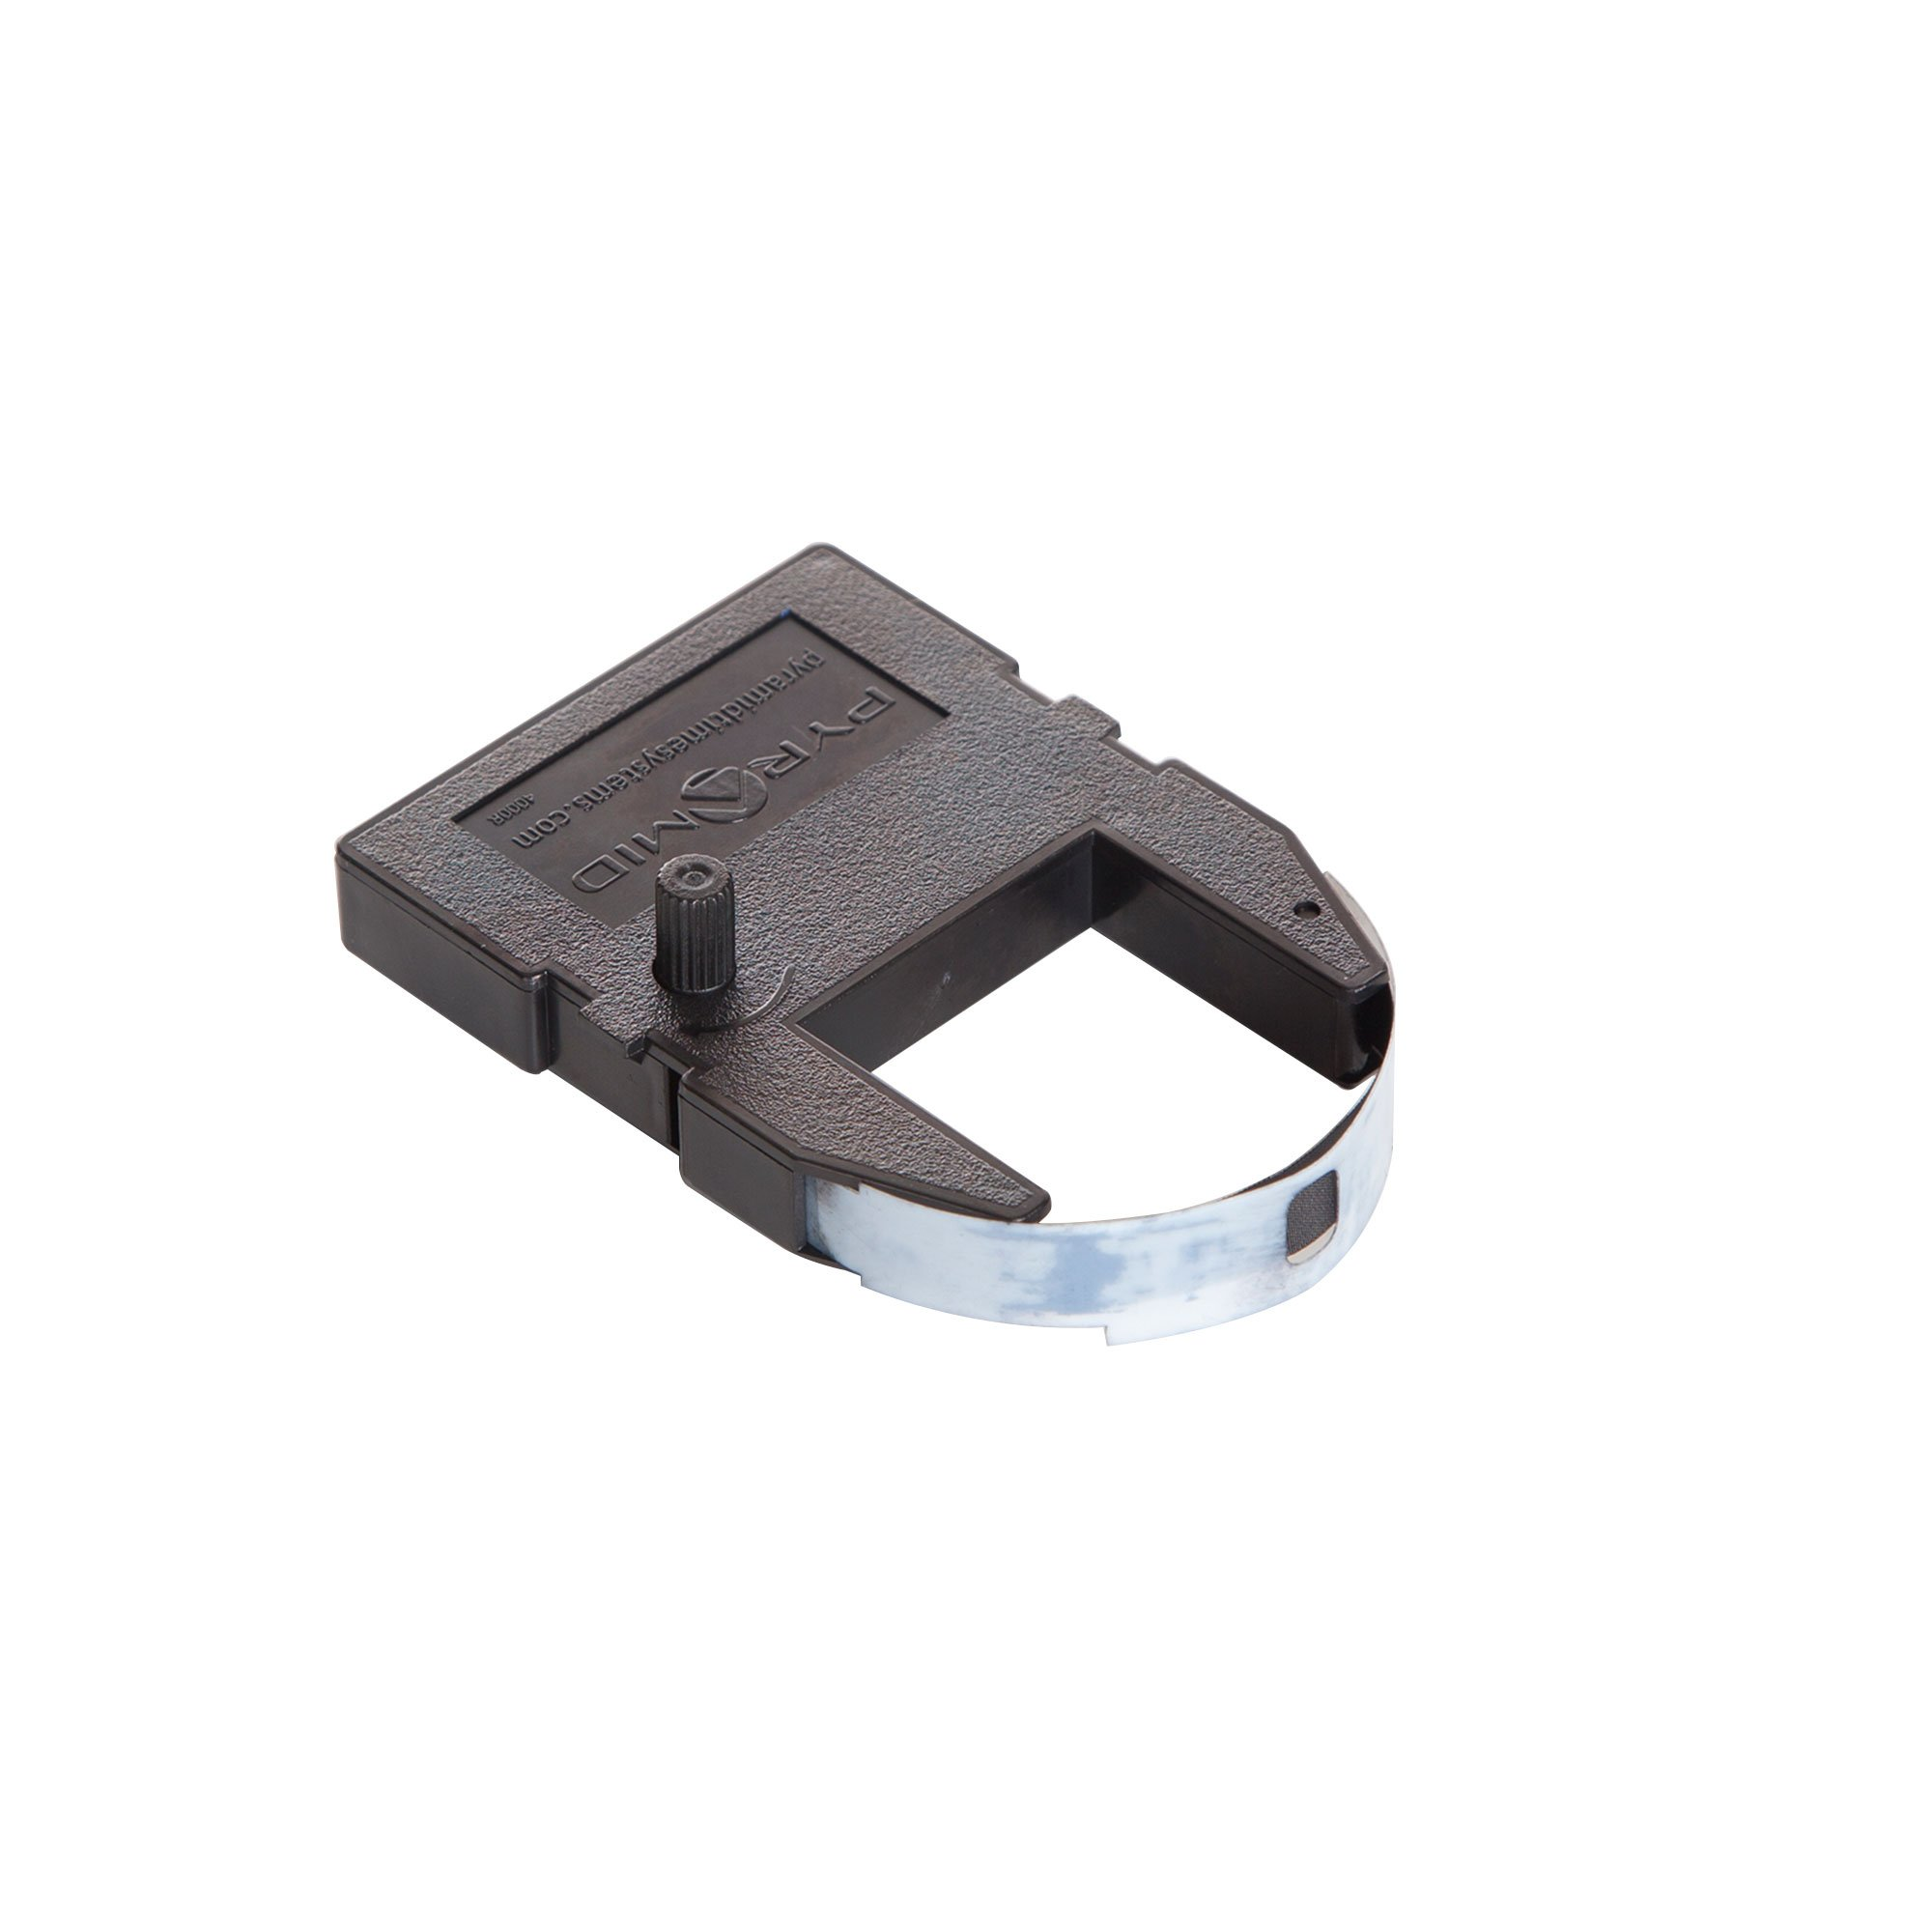 Pyramid 4000R Genuine Replacement Ribbon for 3500, 3700, 4000, 4000HD Time Clocks, 9.84 ft.